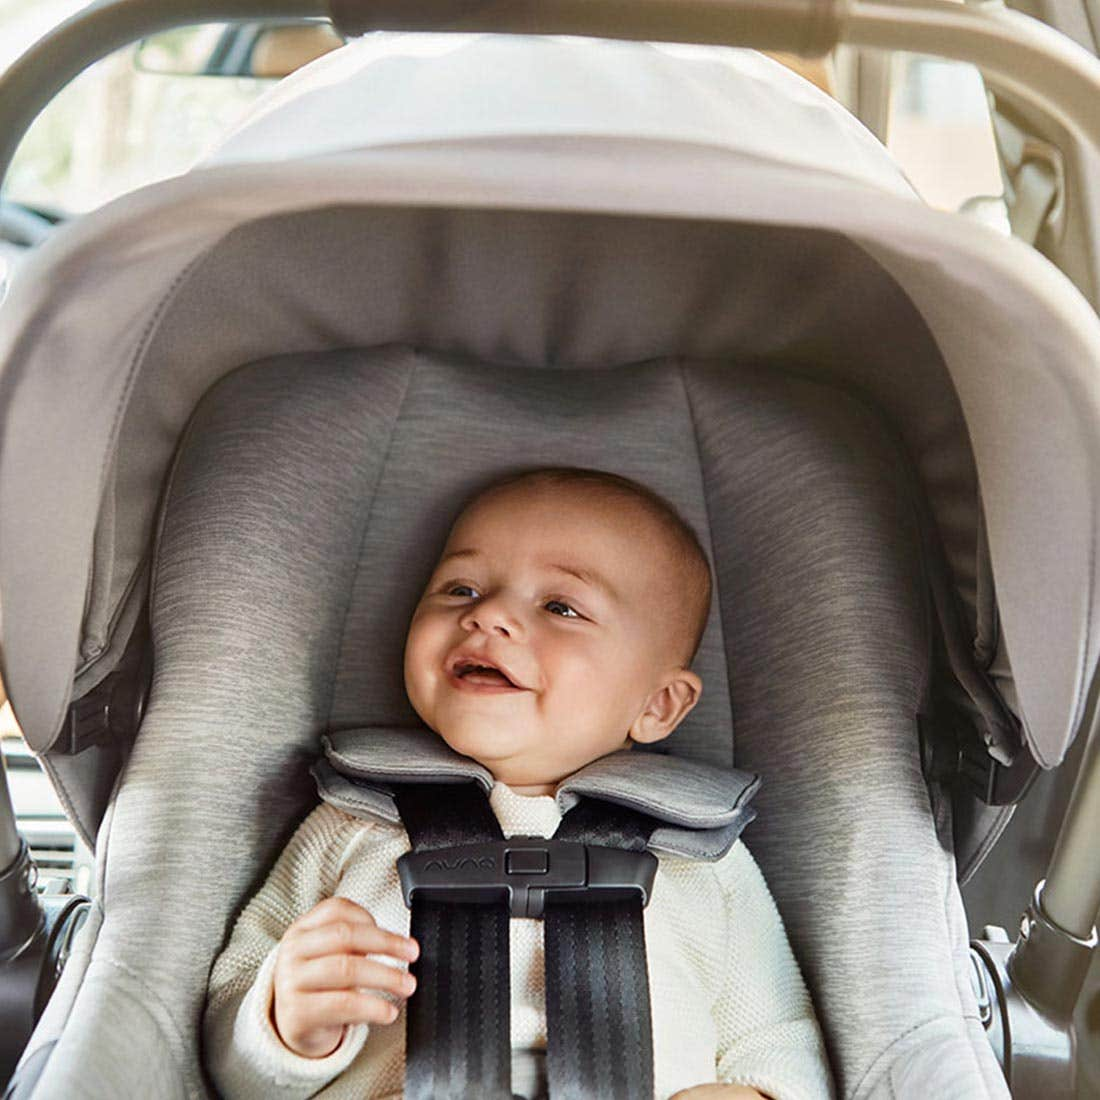 Baby smiling while buckled into a rear-facing infant car seat with canopy up, that is installed in the backseat of a car.